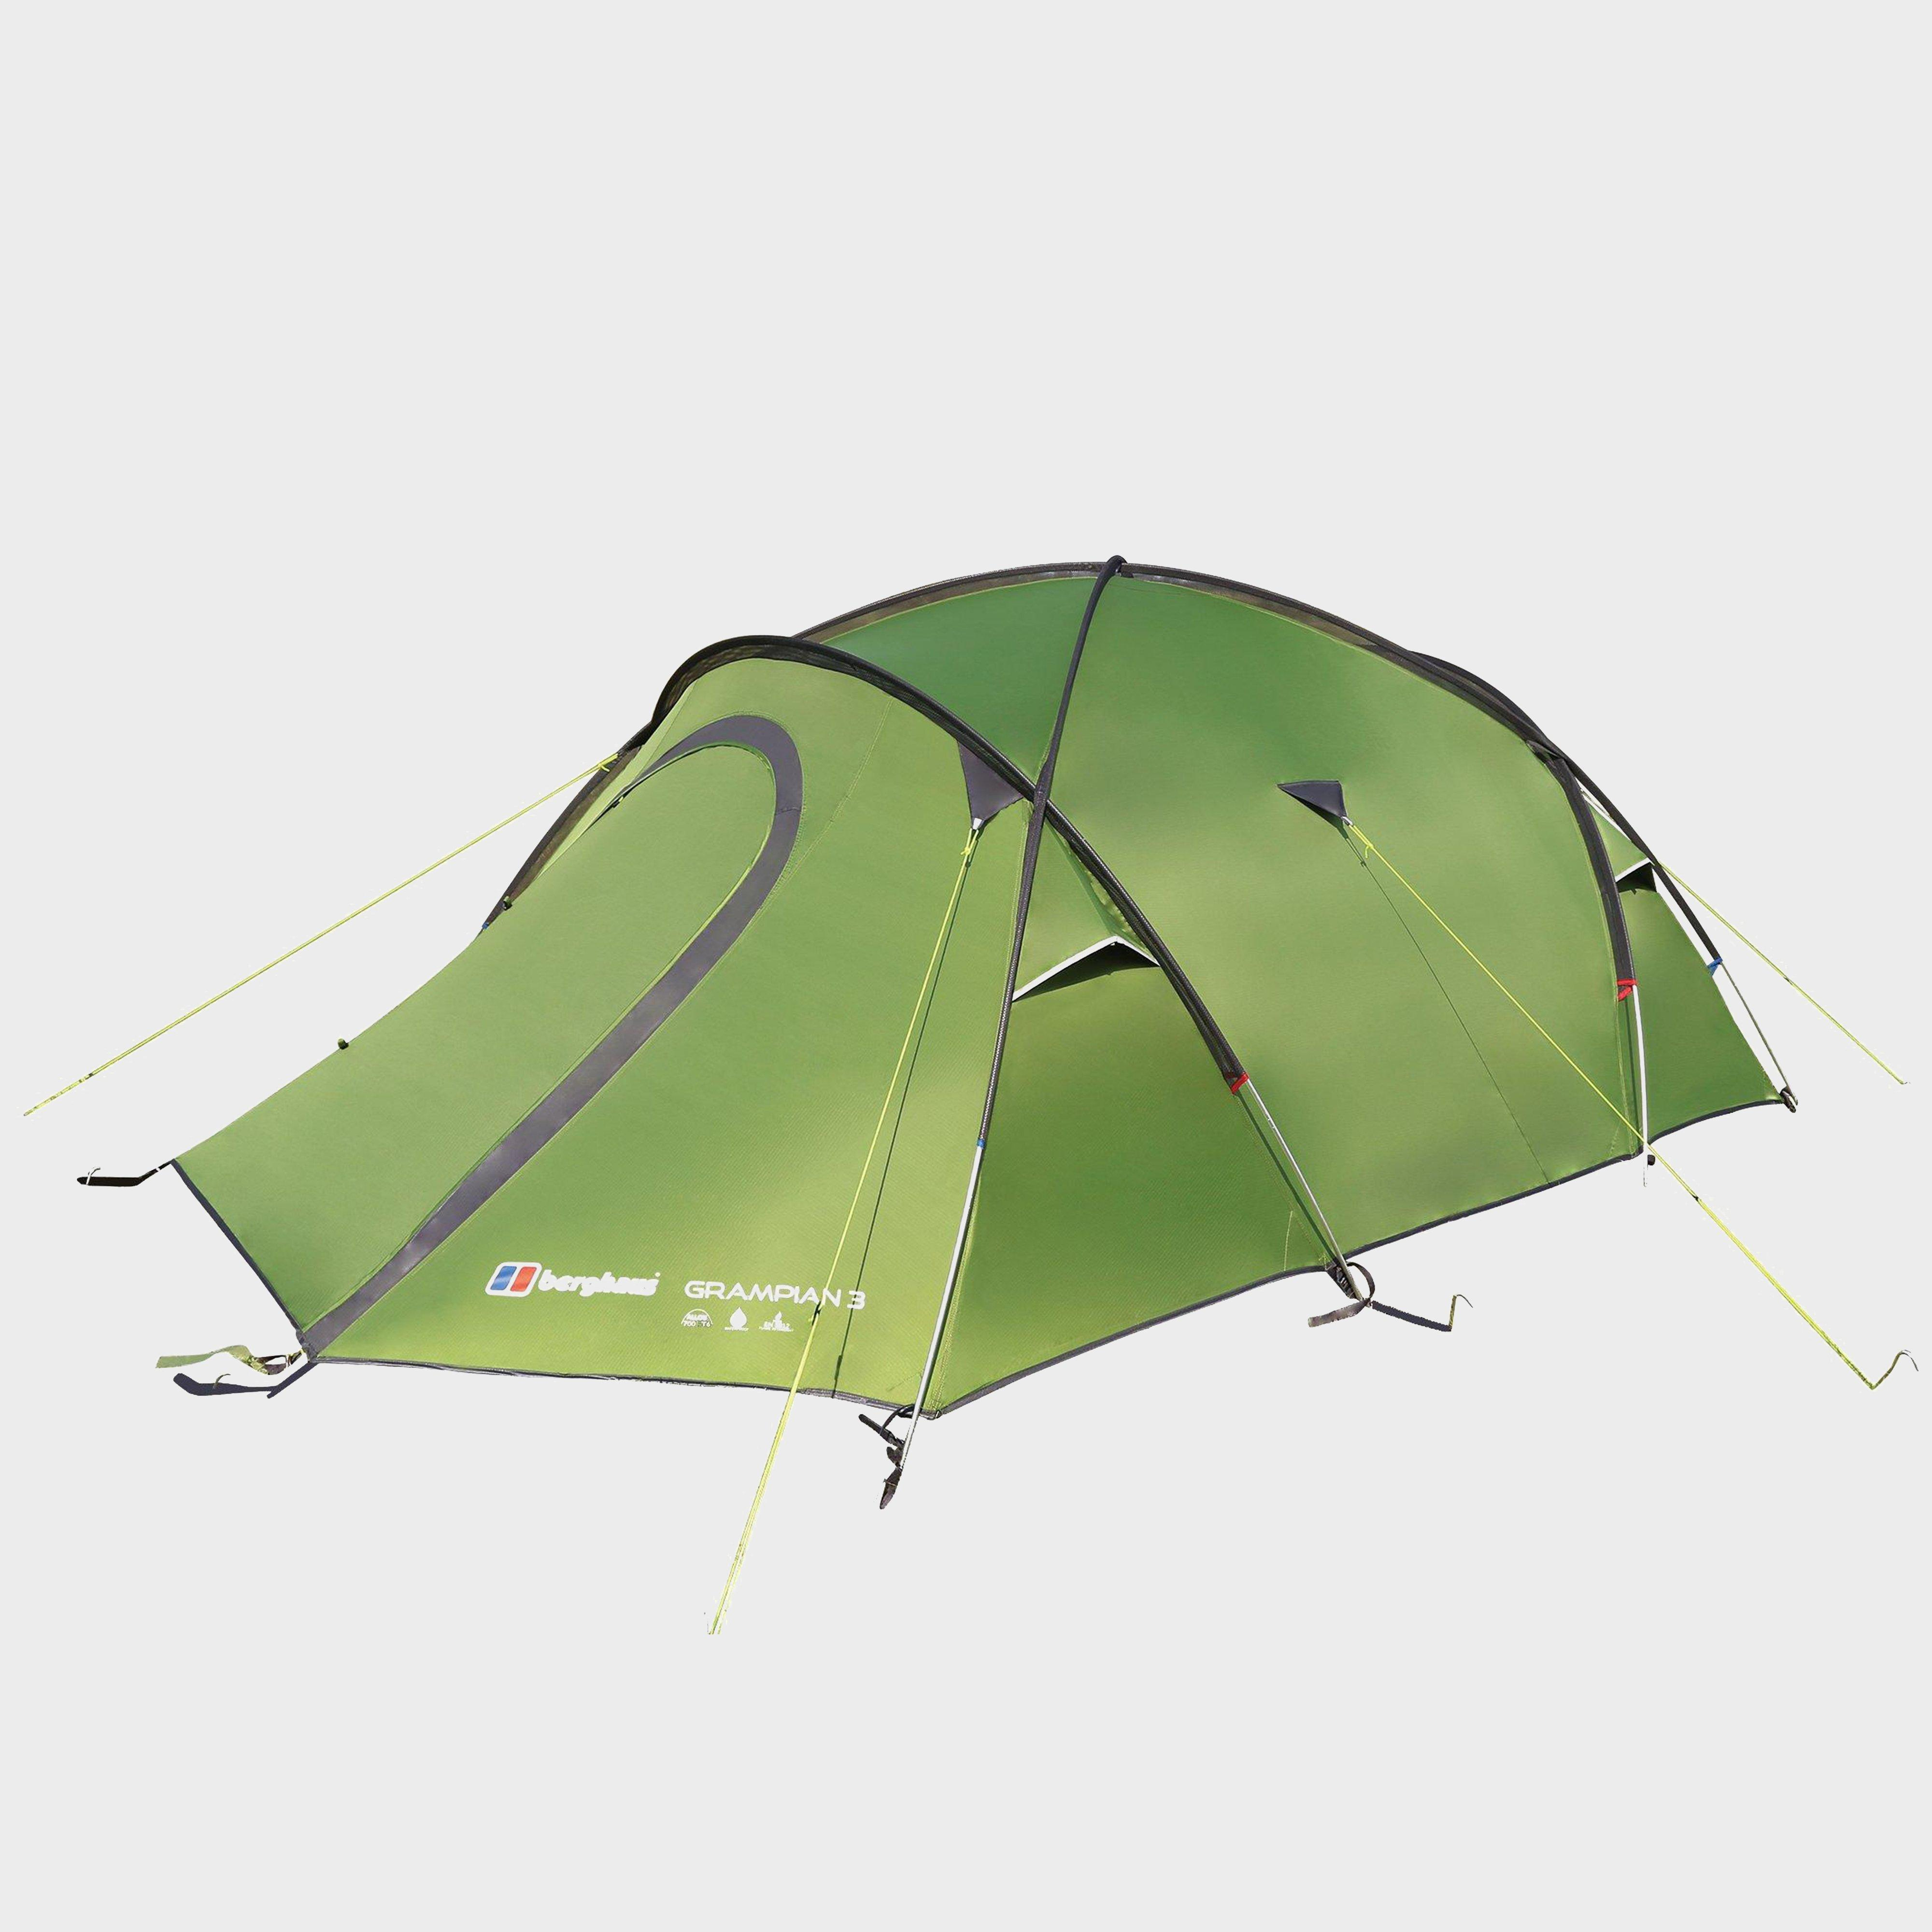 Gr&ian 3 Man Tent : cheap three man tent - memphite.com